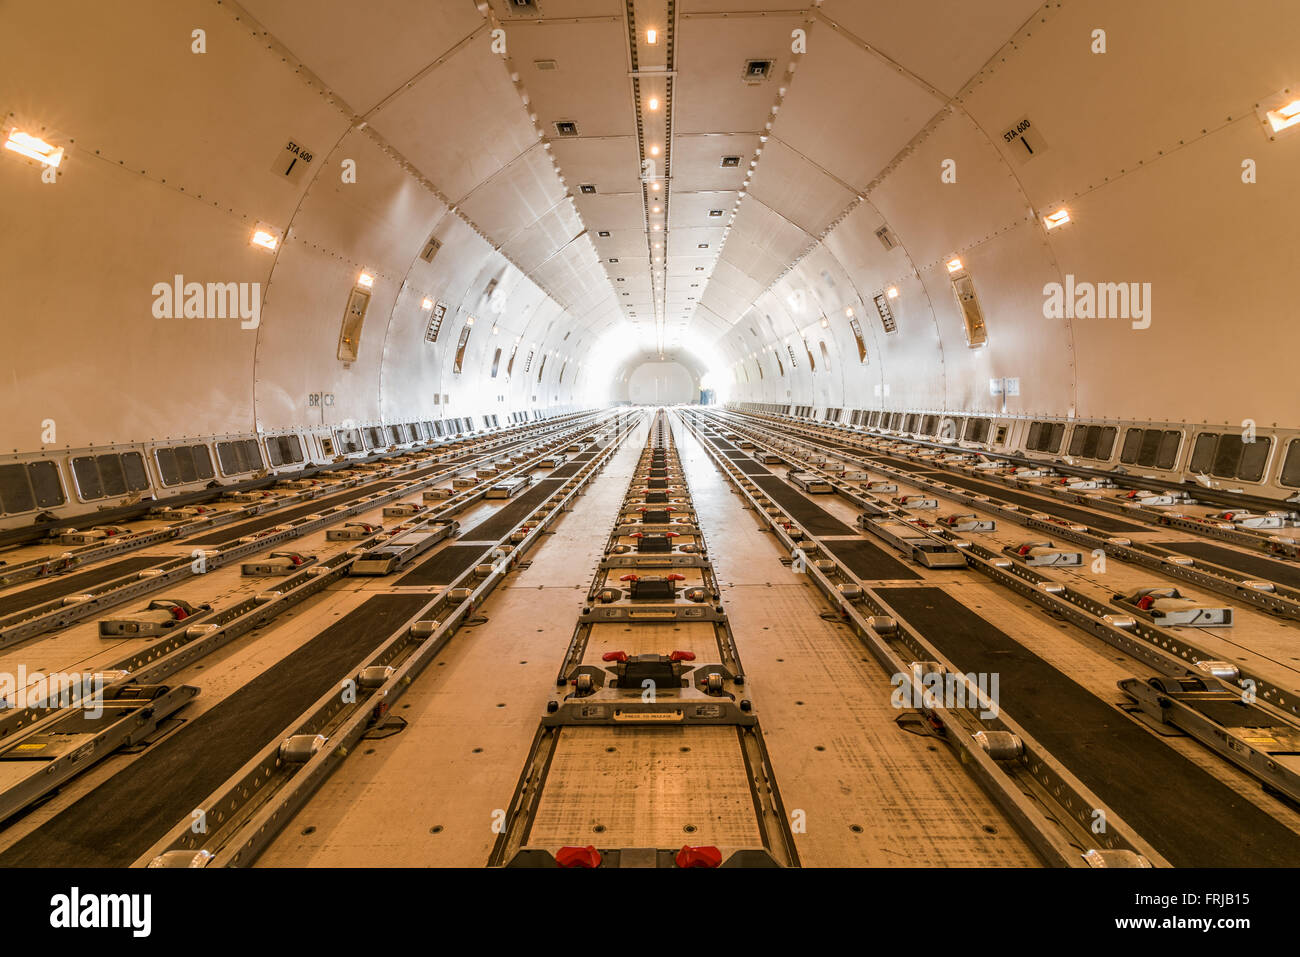 Interior of a Boeing 777 cargo aircraft - Stock Image